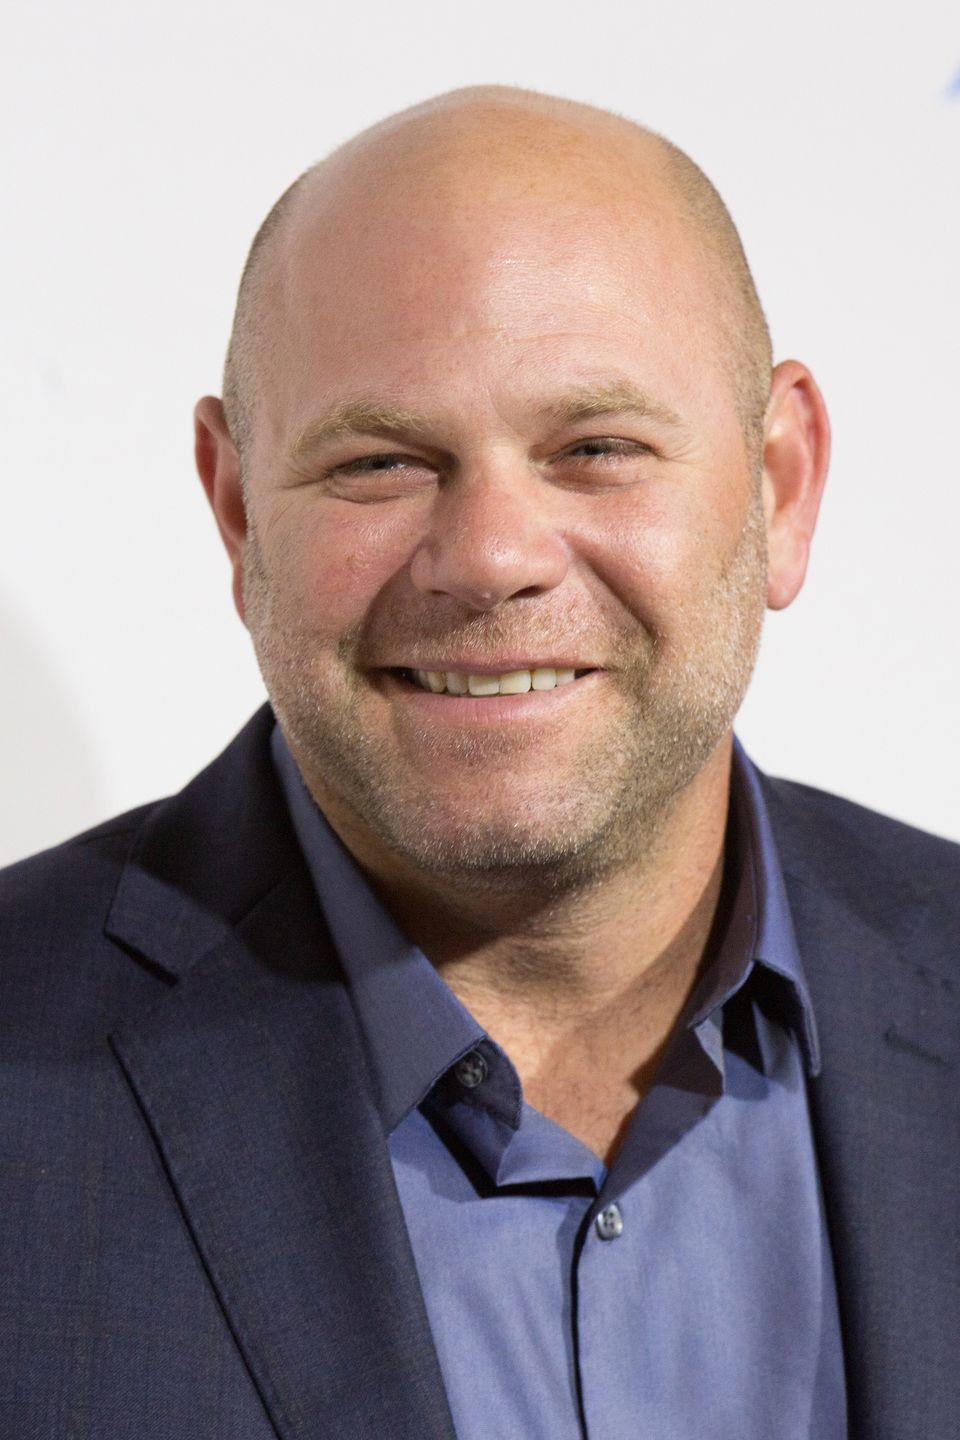 """<p>Following his success, Lombardozzi landed a recurring role on <em>Entourage</em>, and starred in <em>Breakout Kings</em> and <em>Boardwalk Empire</em>. His most recent projects include <em>Ray Donovan</em> and <em>The Irishman</em>.</p><p>Despite his character's signature boisterous nature in <em>The Wire</em>, Lombardozzi told <a href=""""https://www.nydailynews.com/entertainment/tv-movies/bronx-born-domenick-lombardozzi-finds-acting-e-drama-breakout-kings-therapeutic-article-1.118987"""" rel=""""nofollow noopener"""" target=""""_blank"""" data-ylk=""""slk:The New York Daily News"""" class=""""link rapid-noclick-resp""""><em>The New York Daily News</em></a> that he's quiet behind the scenes: """"People say, how can you be quiet and shy if you're an actor? The funny thing is when I act, it's when I feel the most free. It's when I'm not acting that it's like I take two steps back and just observe.""""</p>"""